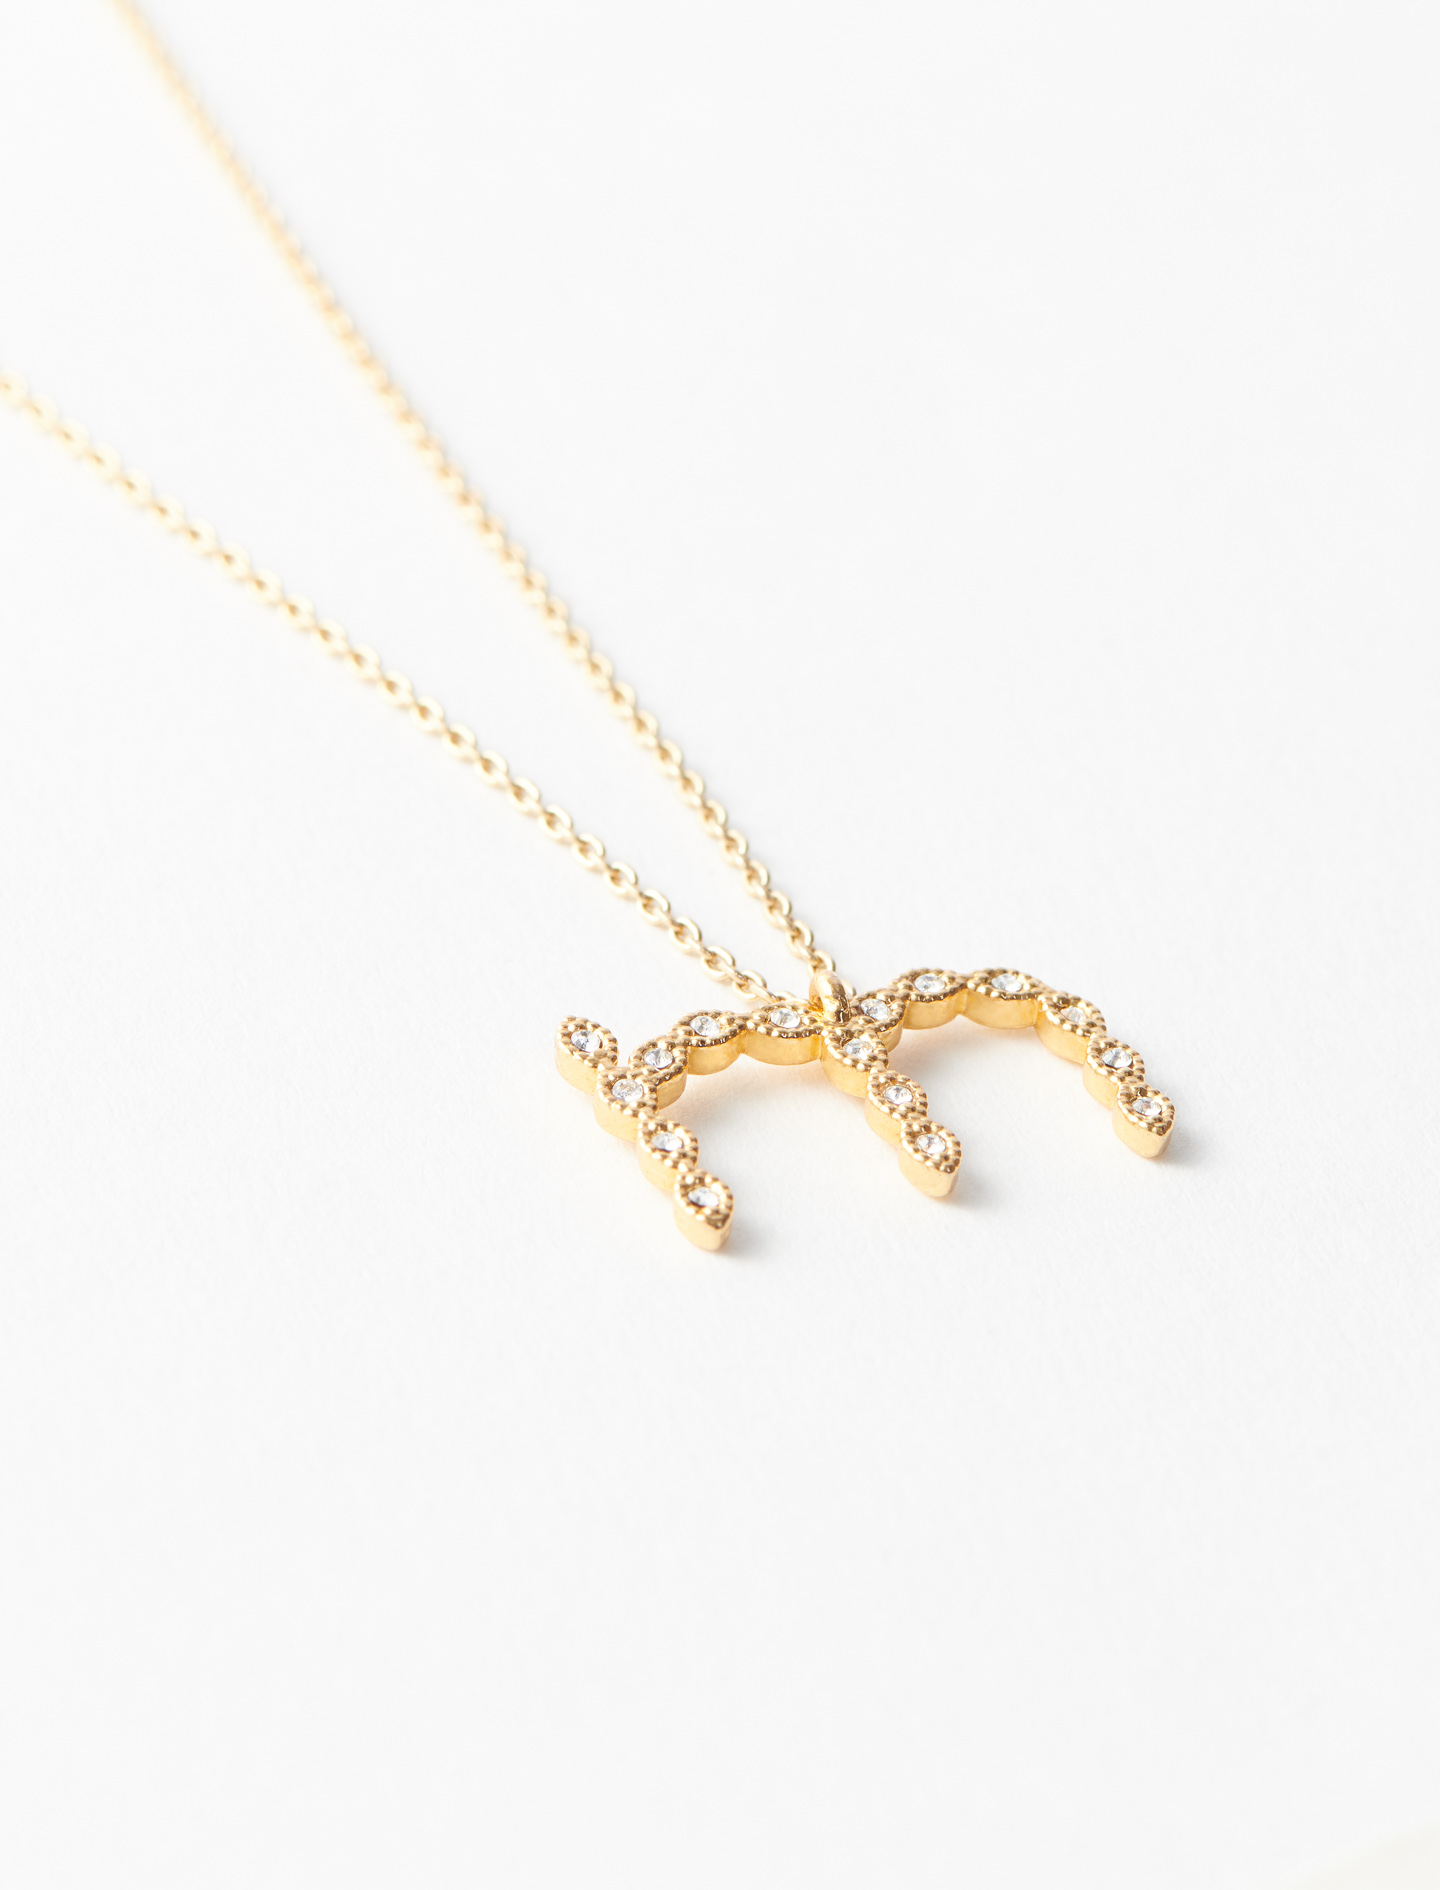 Rhinestone M necklace - Gold